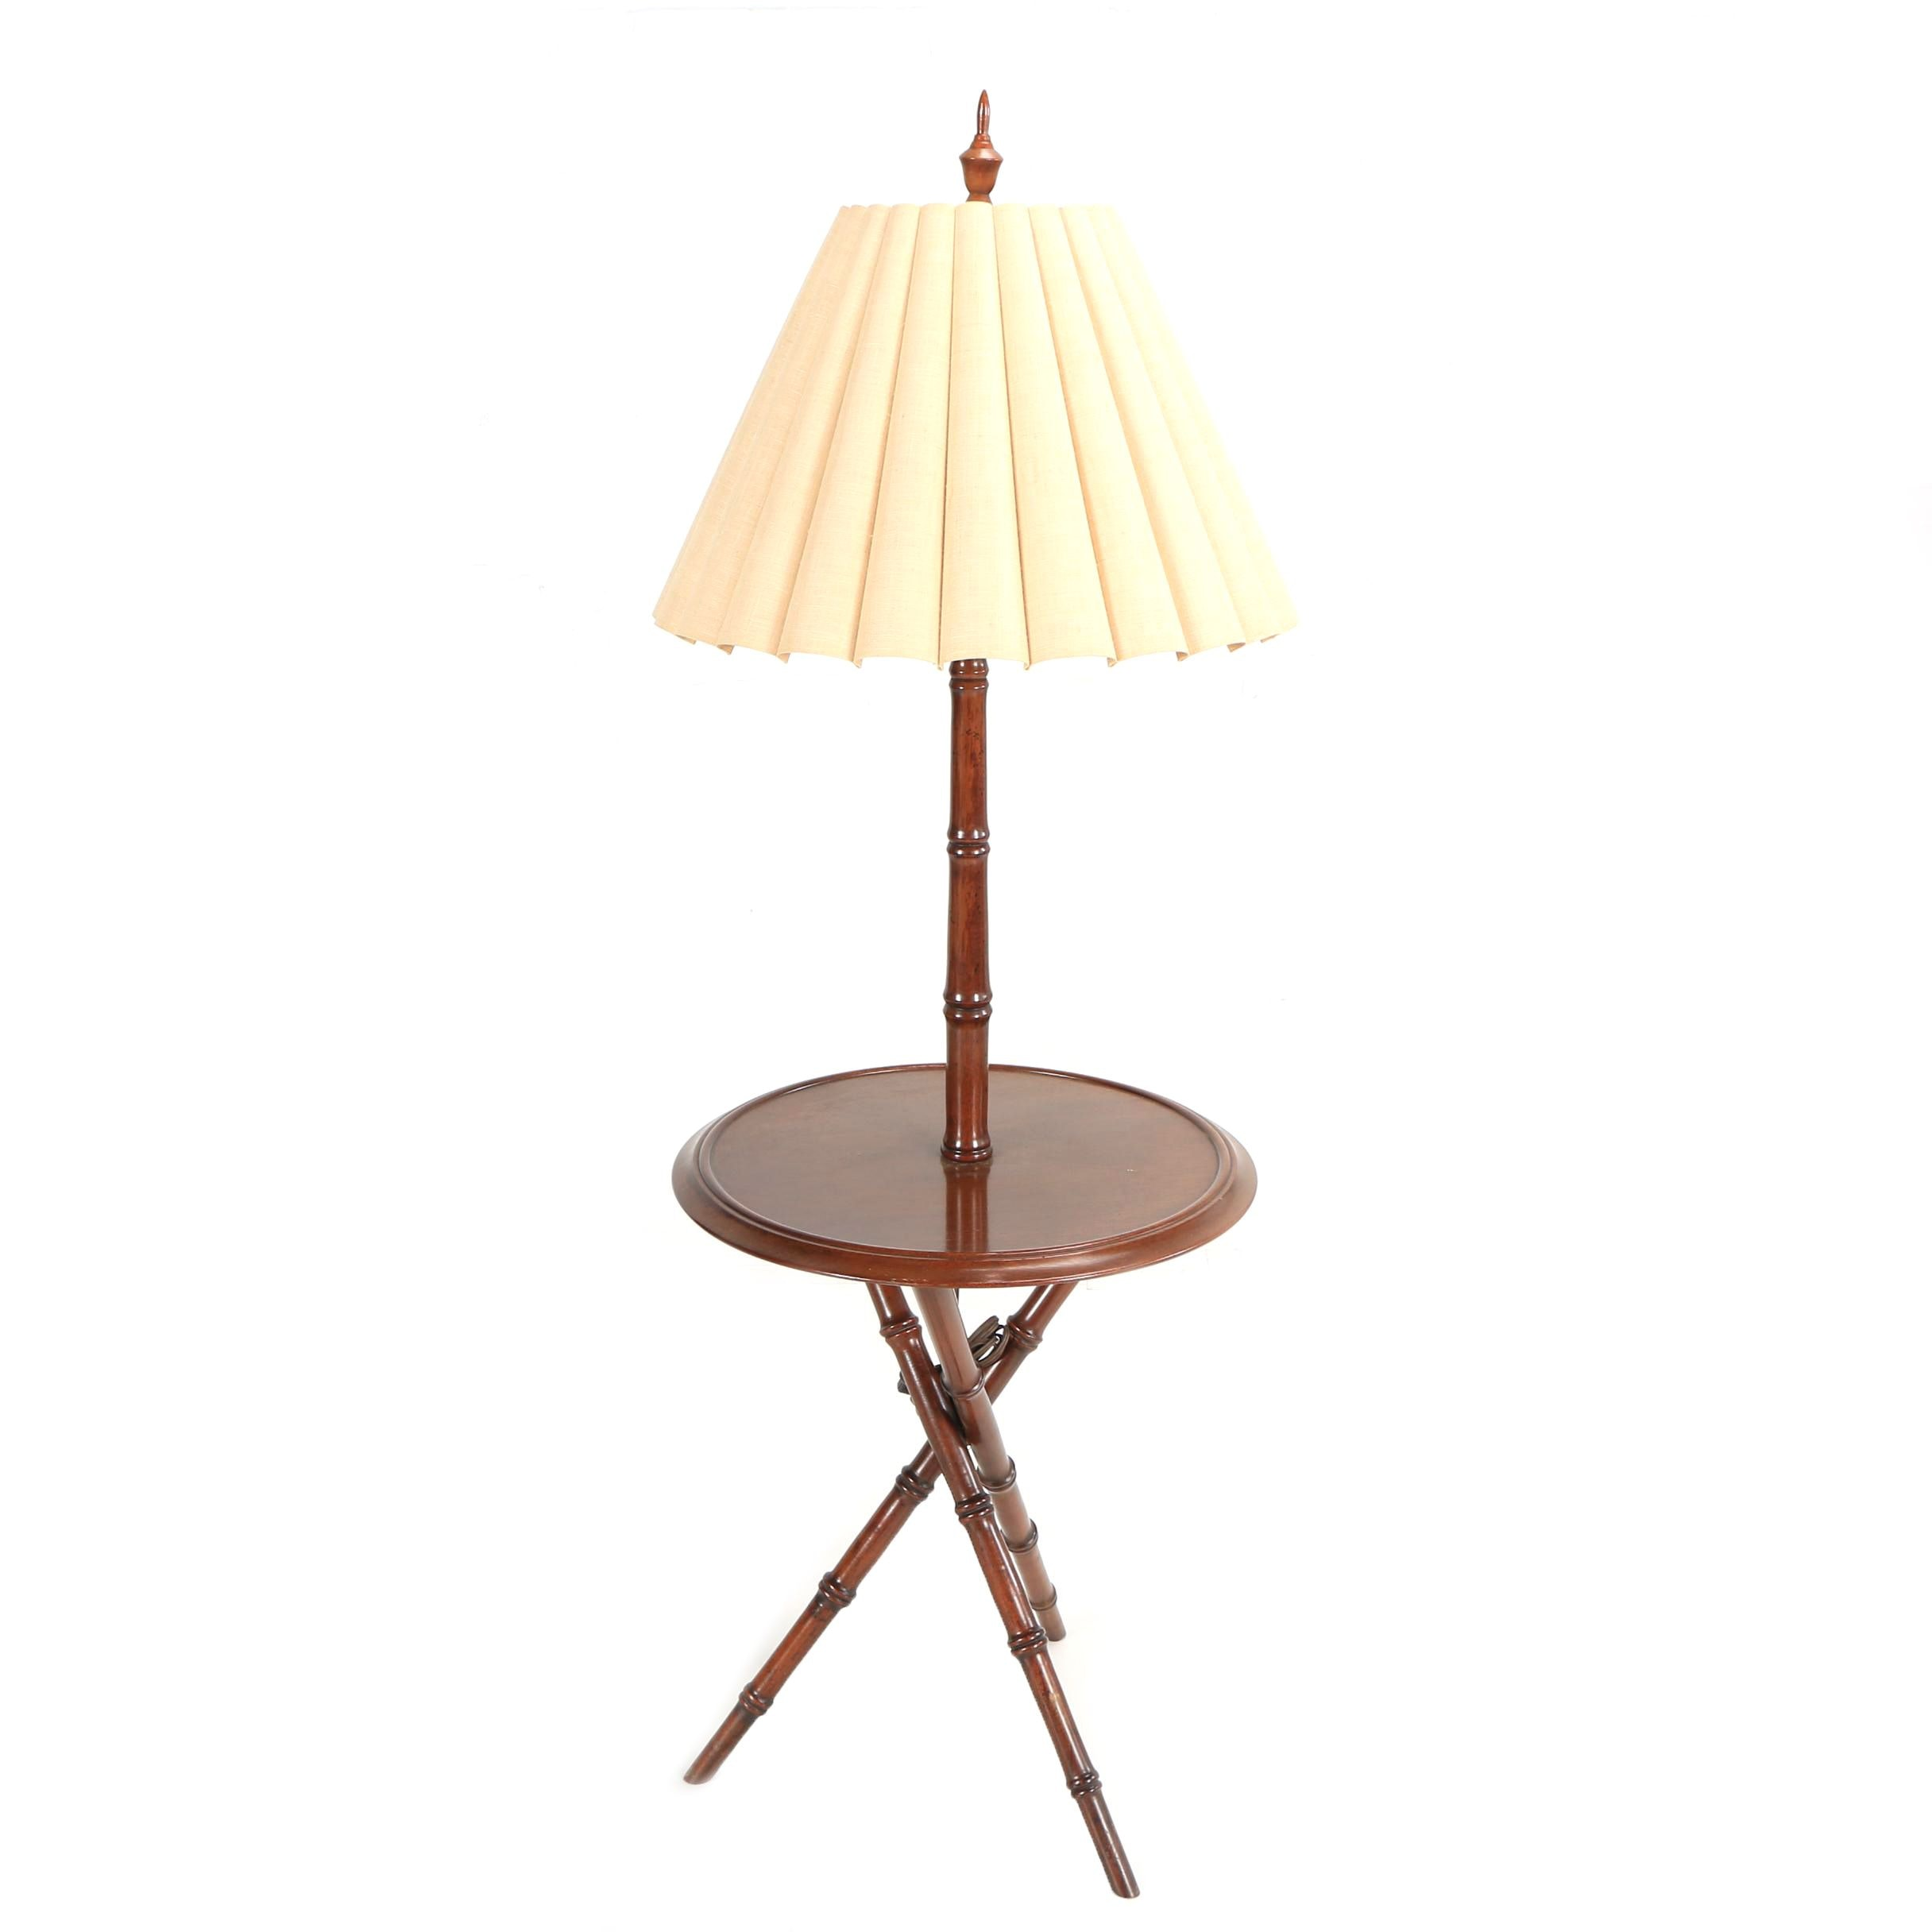 Bamboo Style Mahogany Floor Lamp with Round Table Top